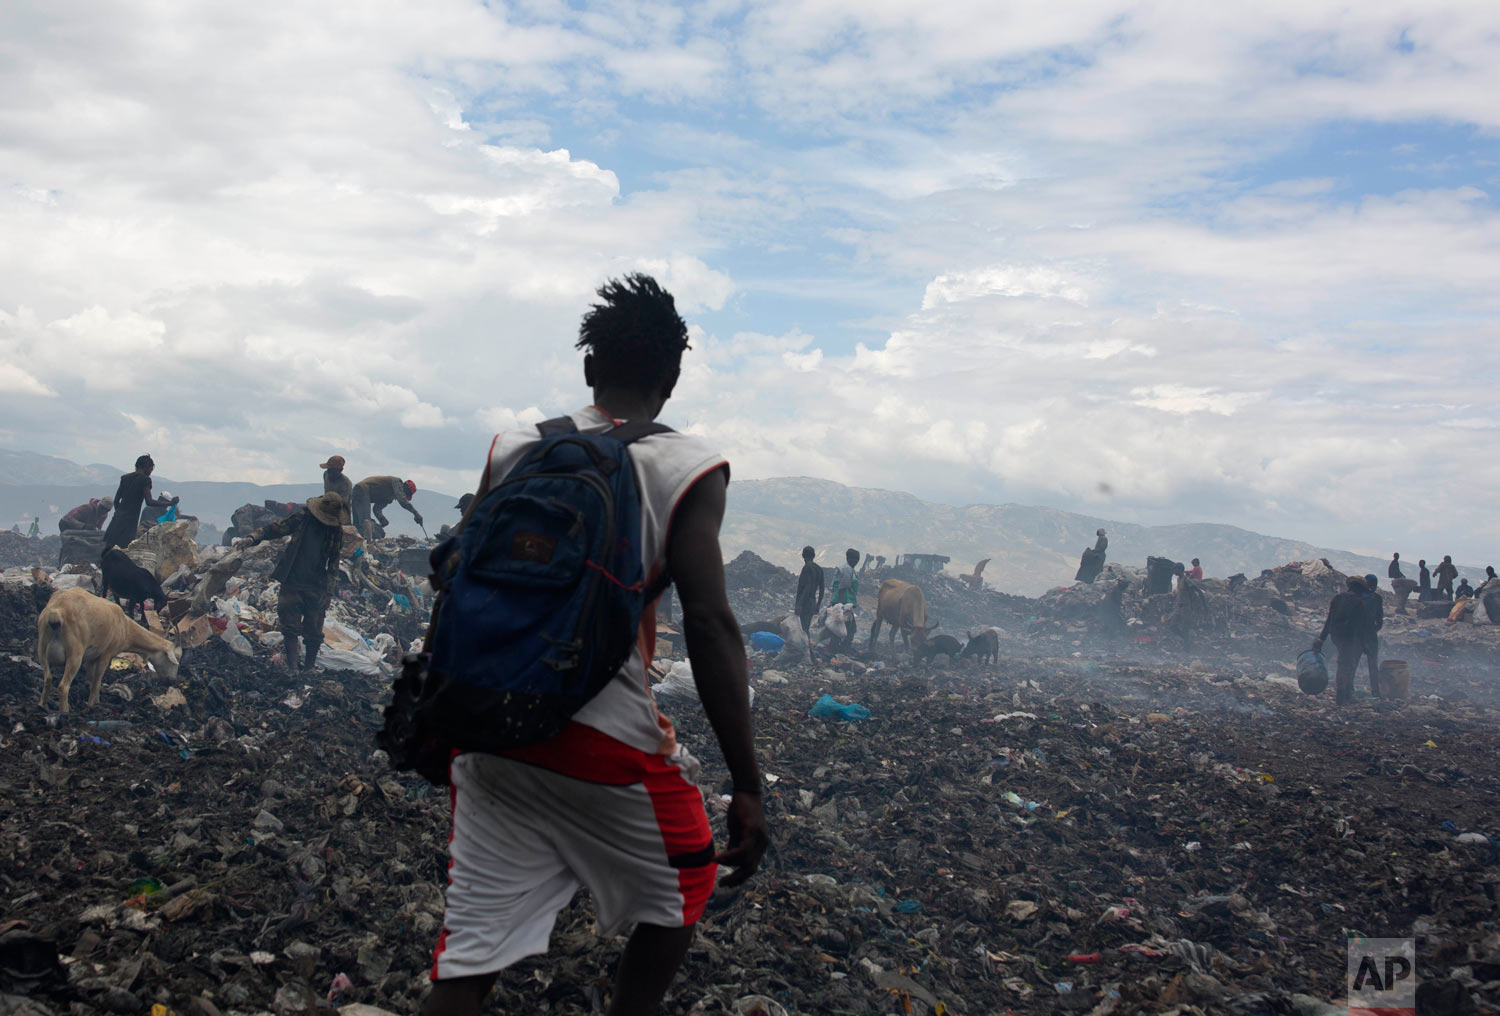 Changlair Aristide crosses the landfill after a day of scavenging trash, as he makes his way to meet with friends. Aug. 27, 2018. (AP Photo/Dieu Nalio Chery)